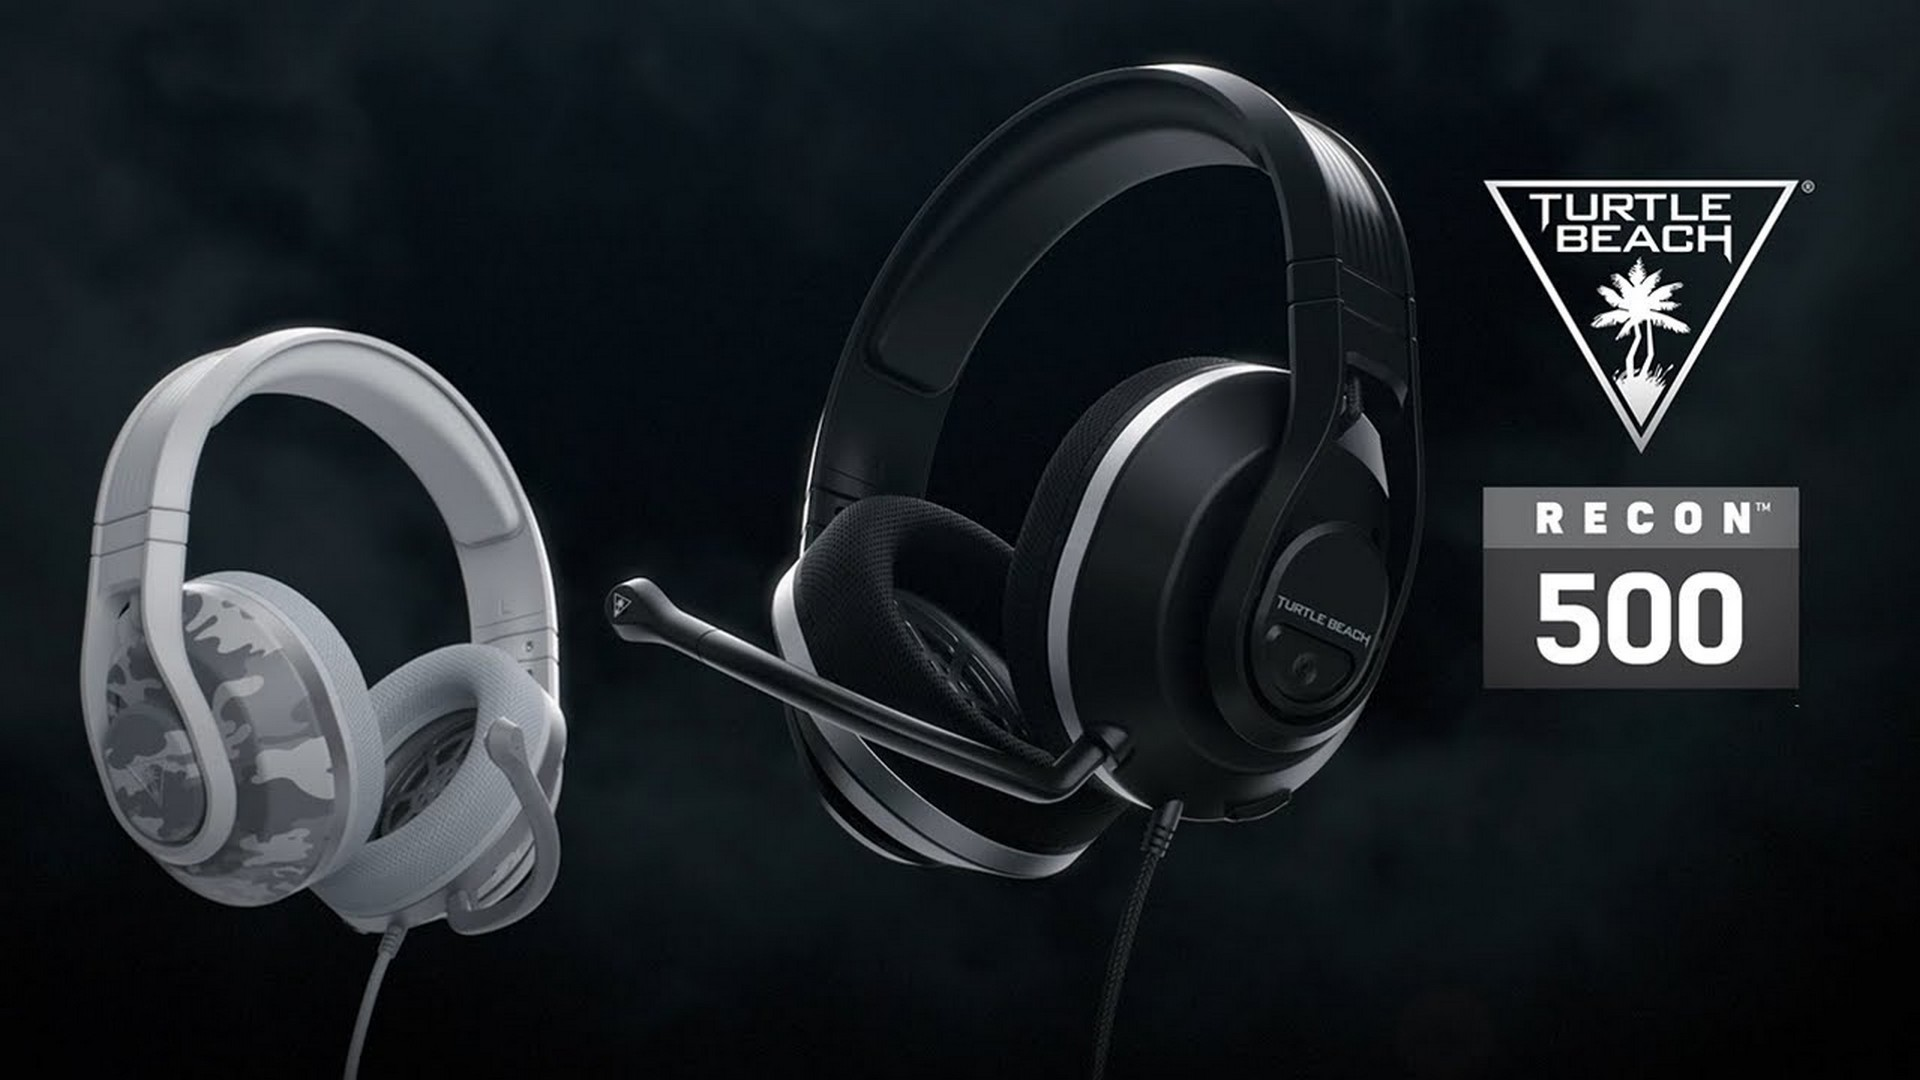 Turtle Beach Unveils The All-New Recon 500 Gaming Headset